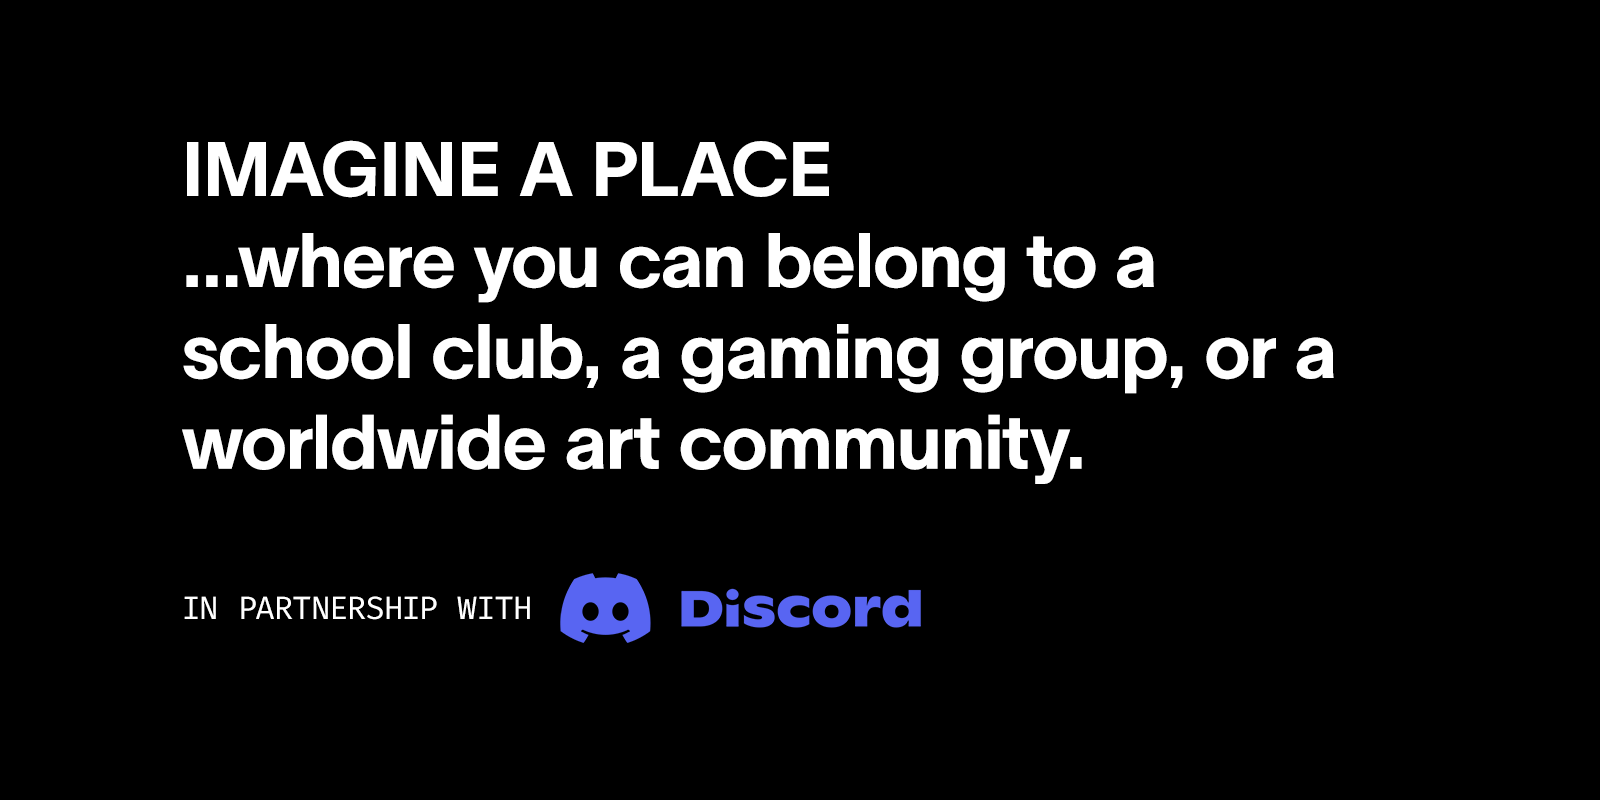 discord-Editorial-Endcard (1).png